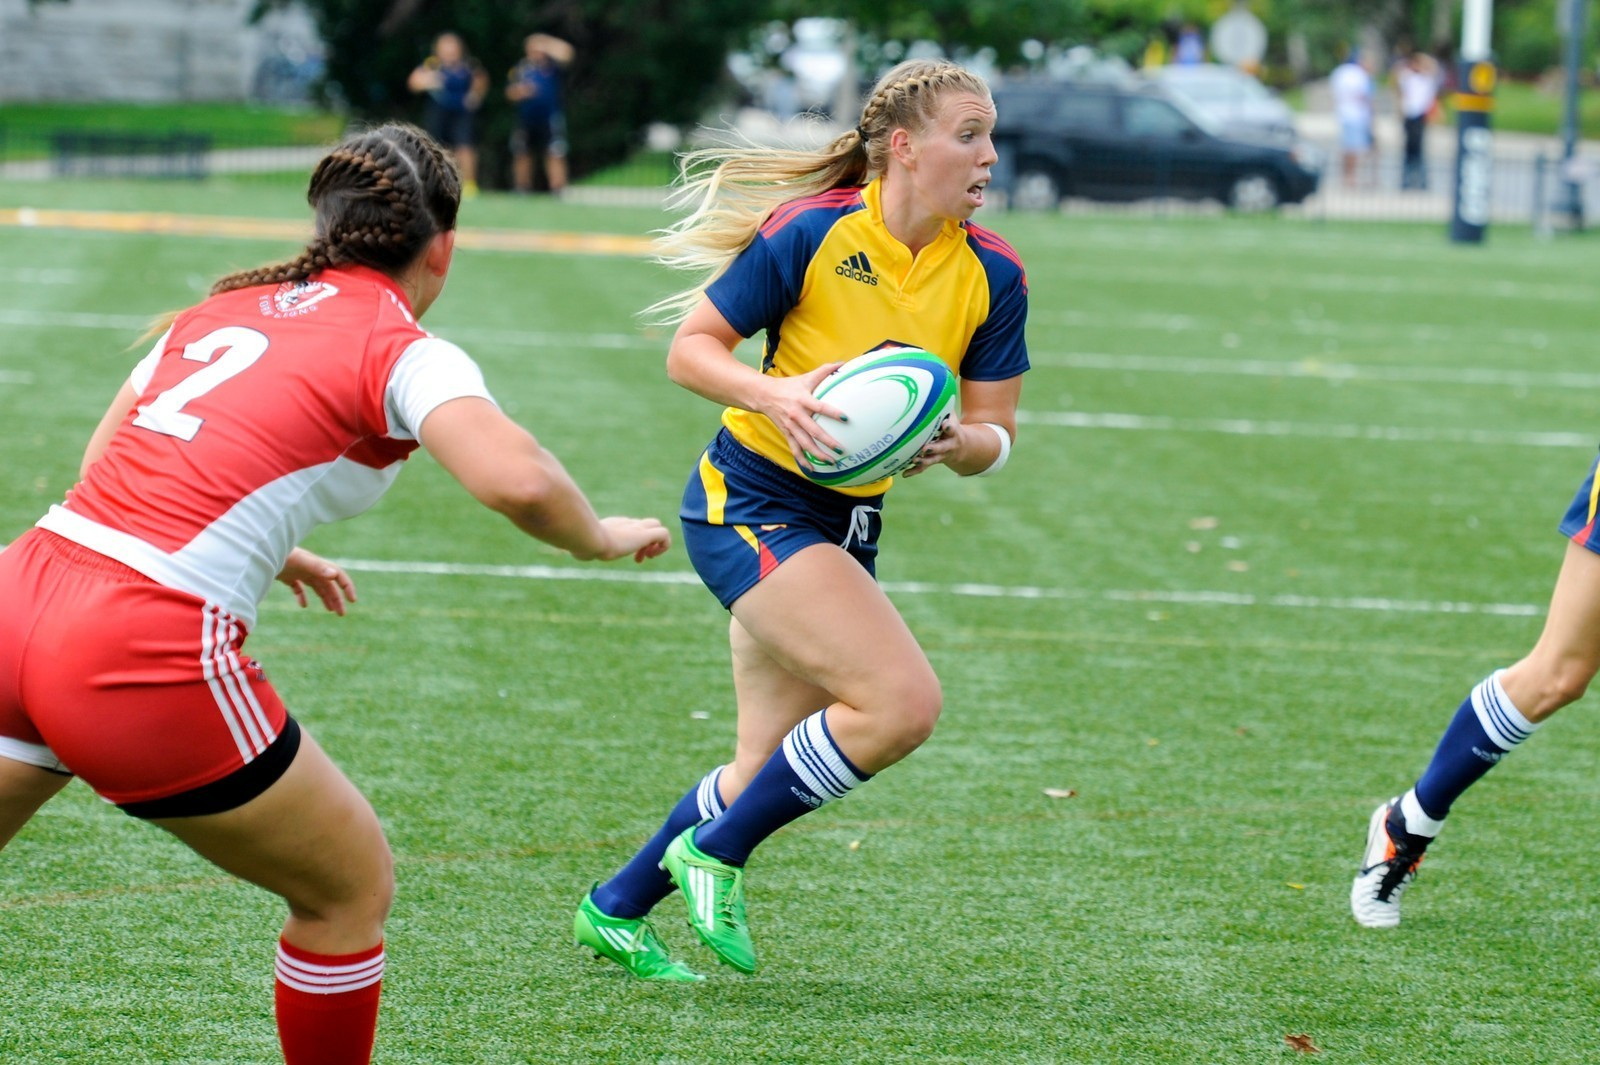 Miranda Seifert - Rugby (W) - Queen's University Athletics